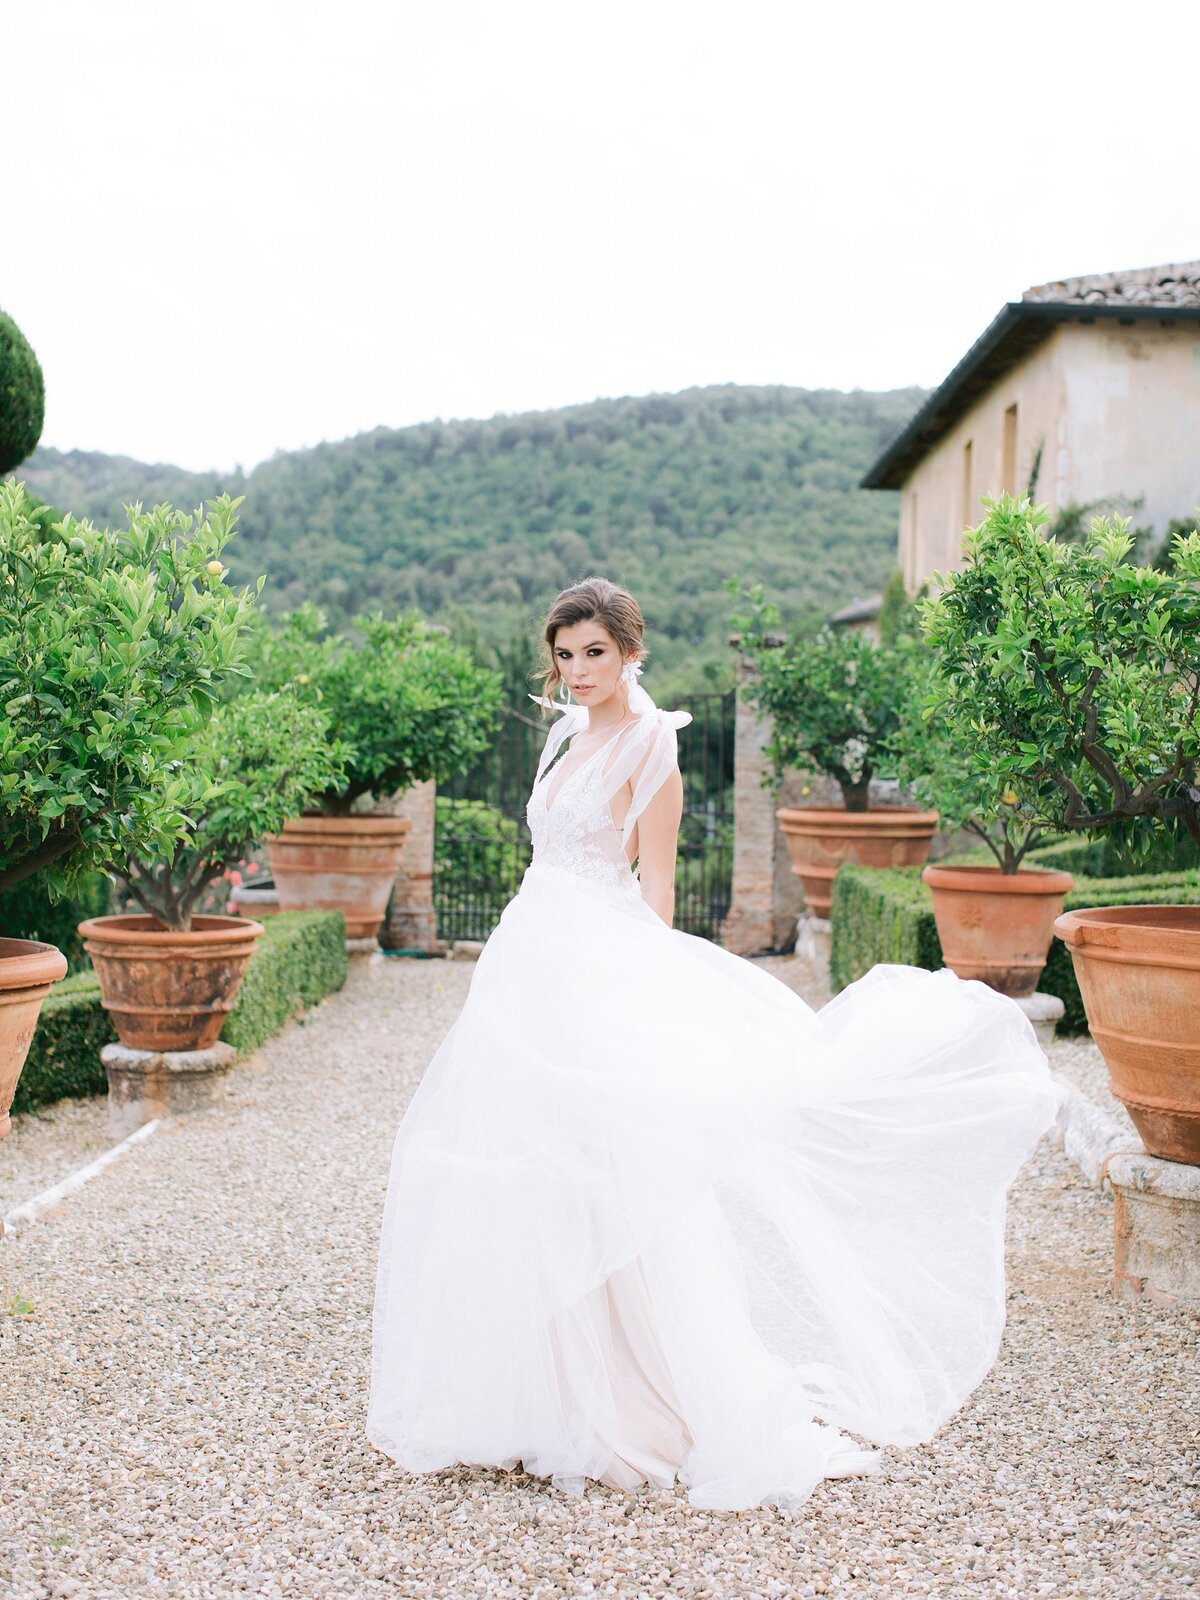 NKT-Events_Wedding-Inspiration-Editorial_Castello-di-Celsa_0037